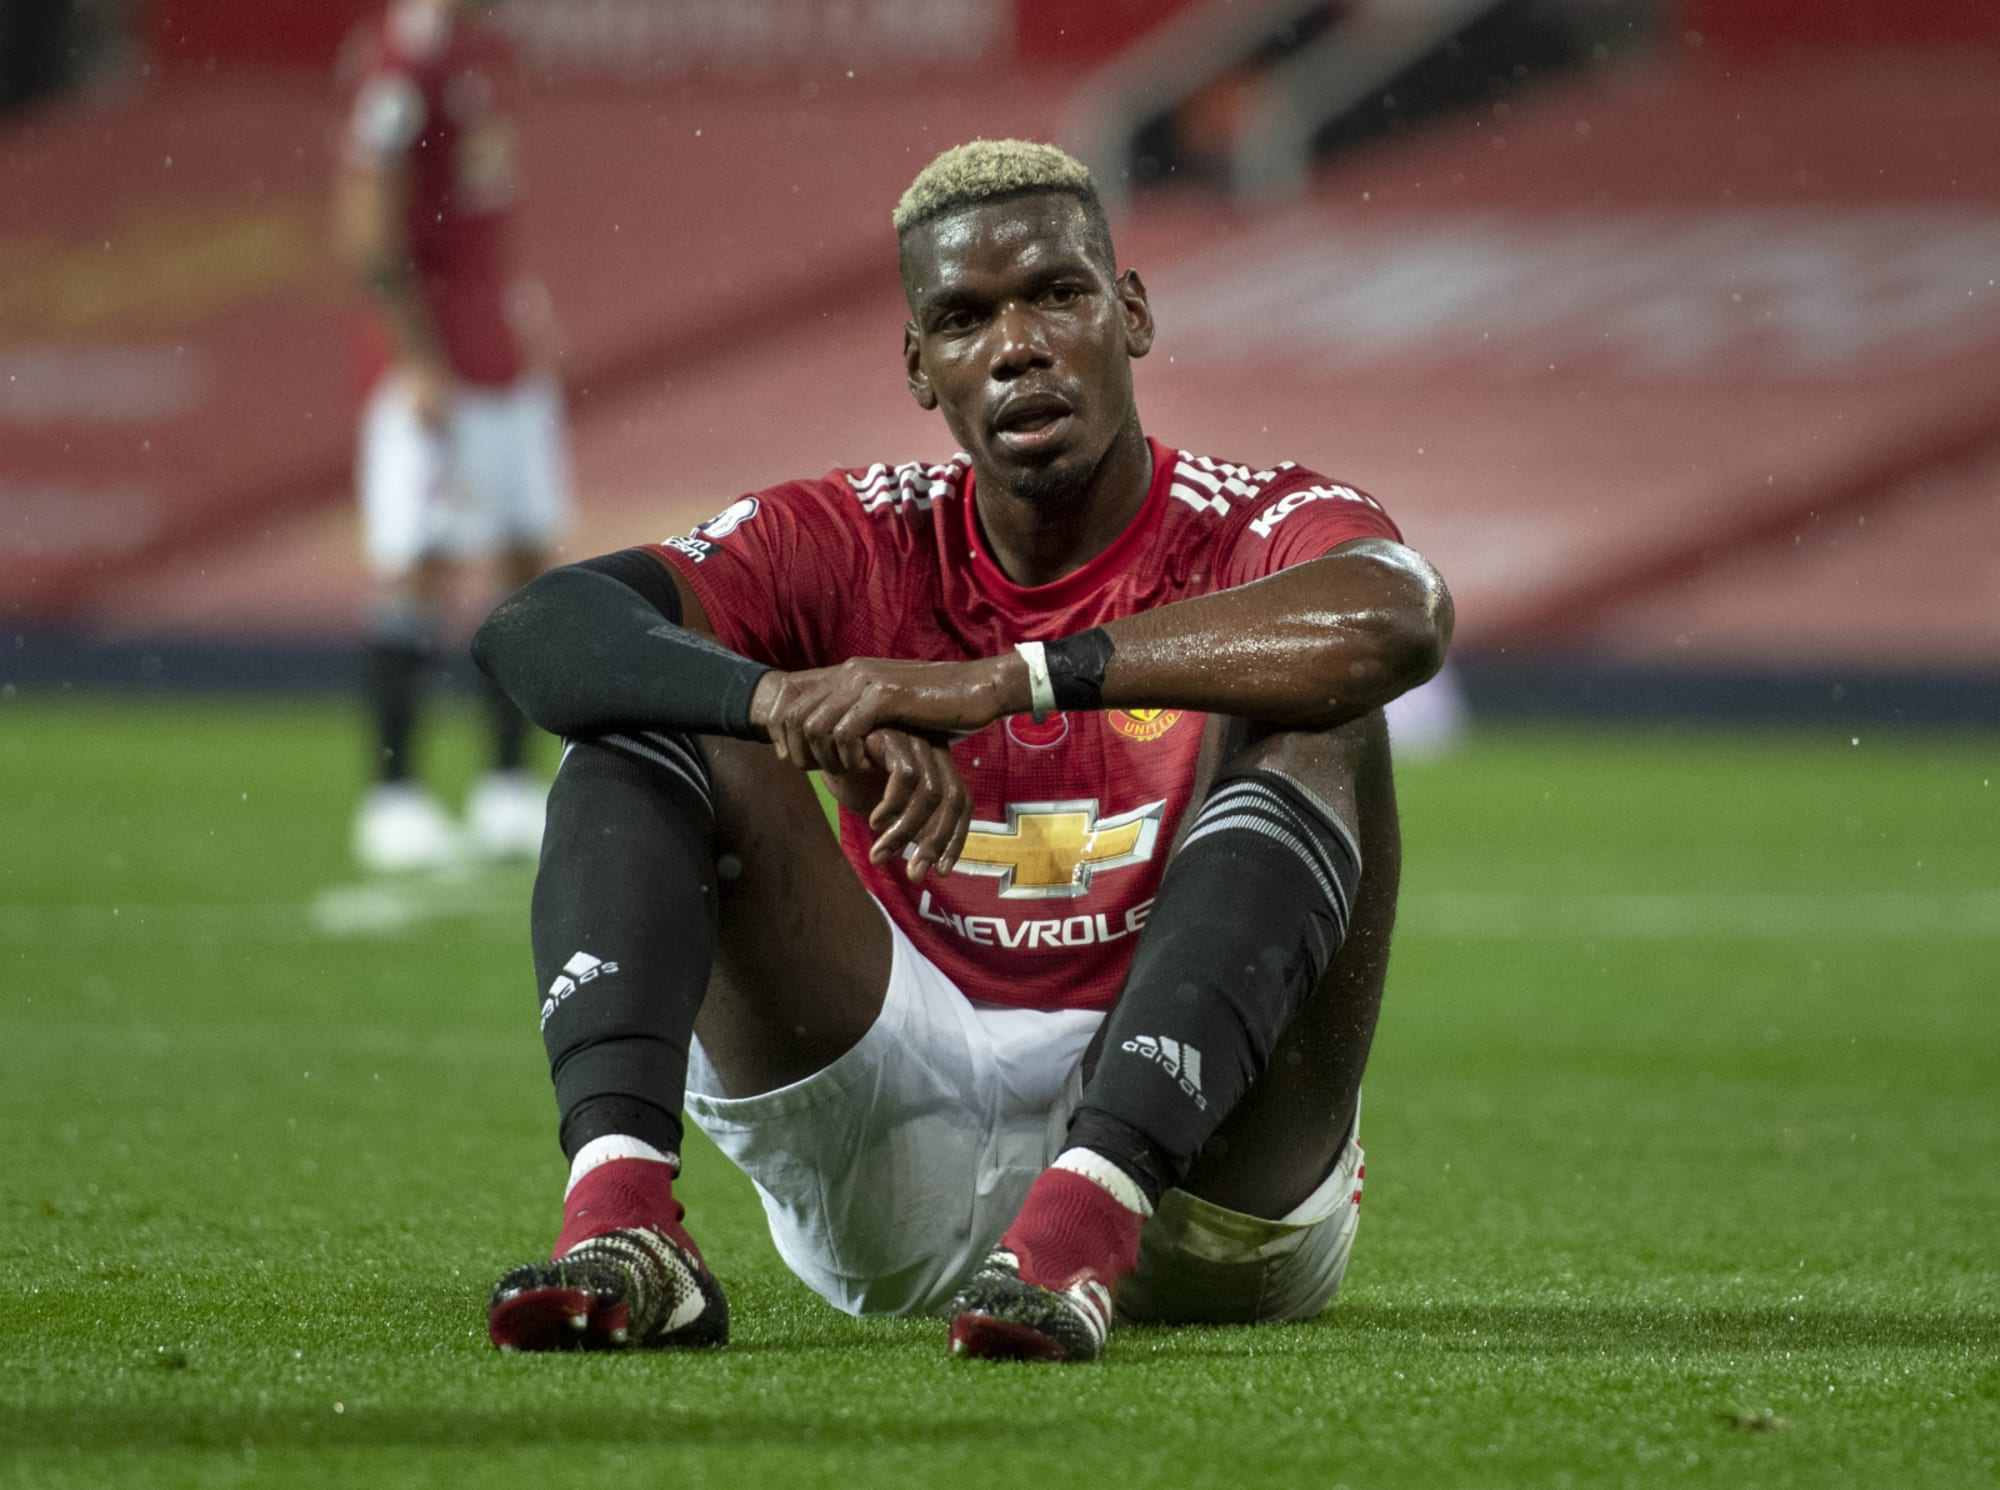 Paul Pogba is close to agreeing on terms with PSG